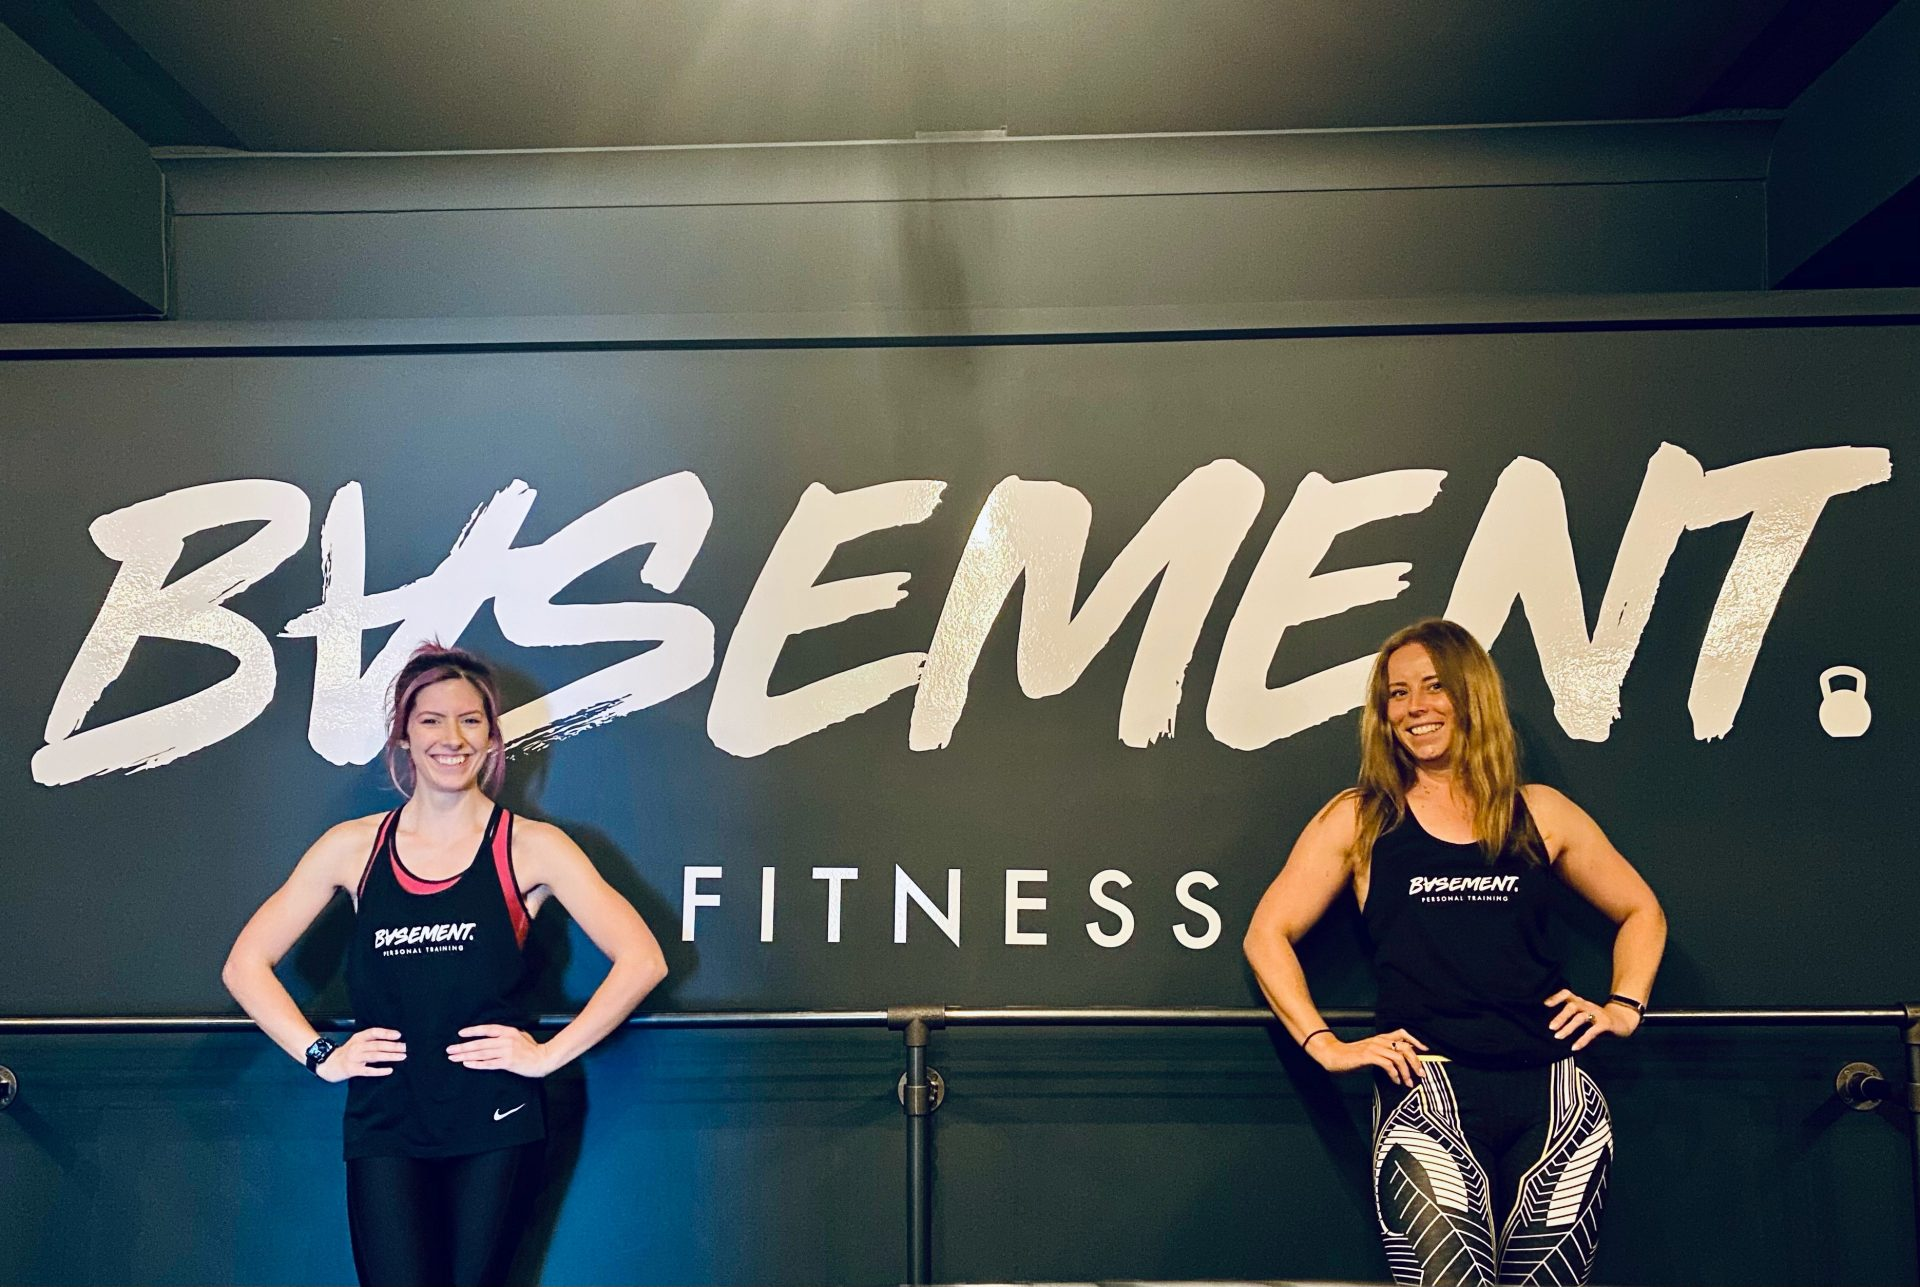 Basement business boost for personal trainers